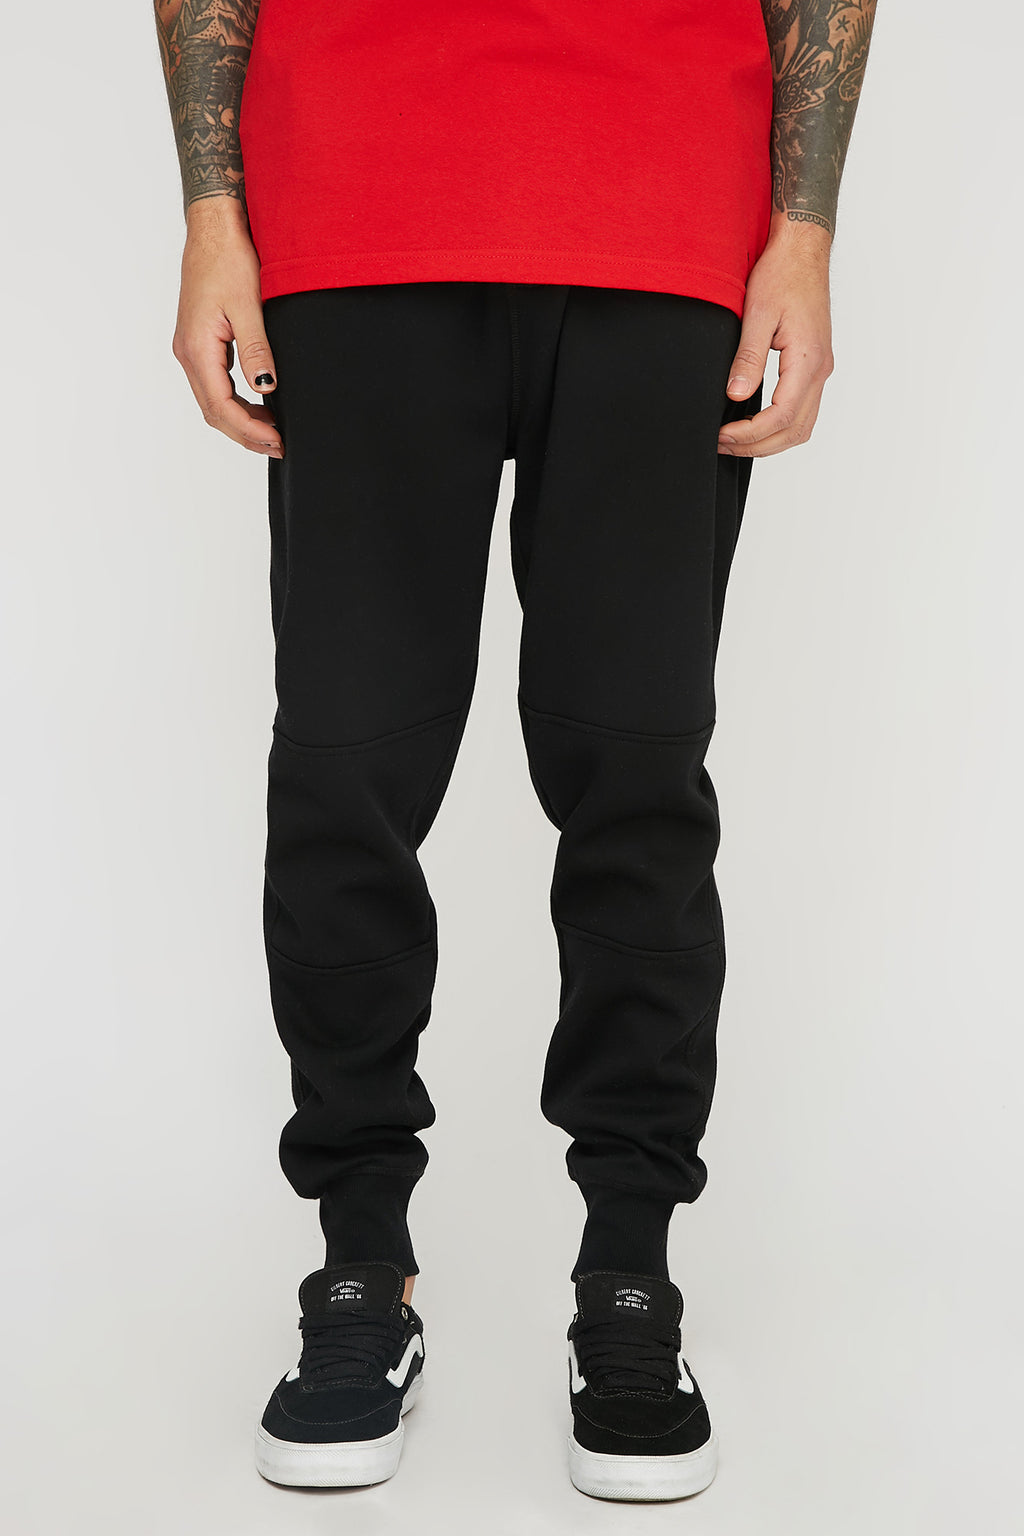 West49 Mens Zipper Pocket Jogger